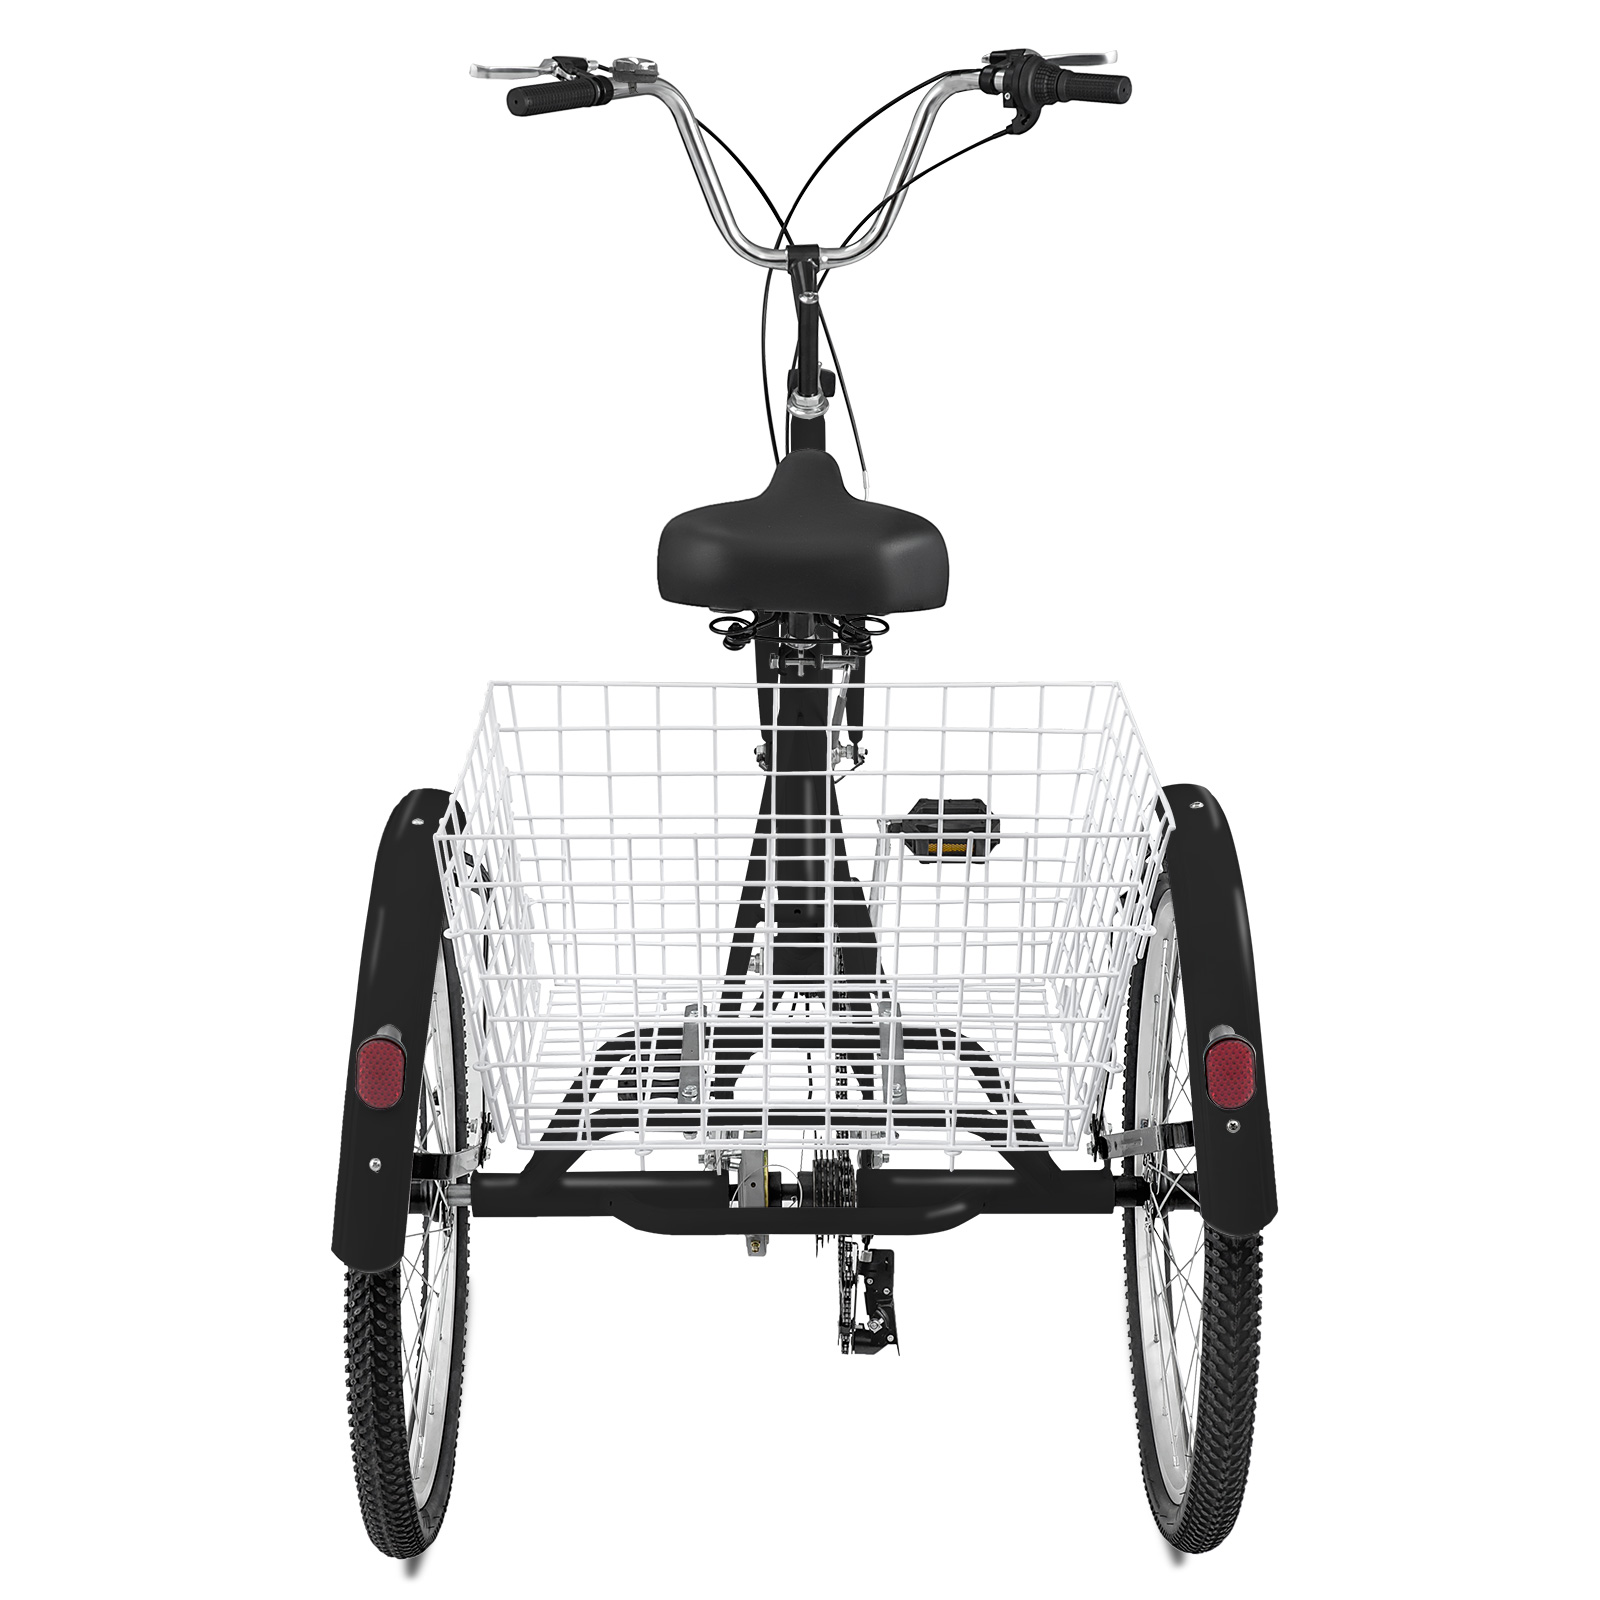 20-24-26-034-Adult-Tricycle-1-7-Speed-3-Wheel-Large-Basket-For-Shopping-Optional thumbnail 120